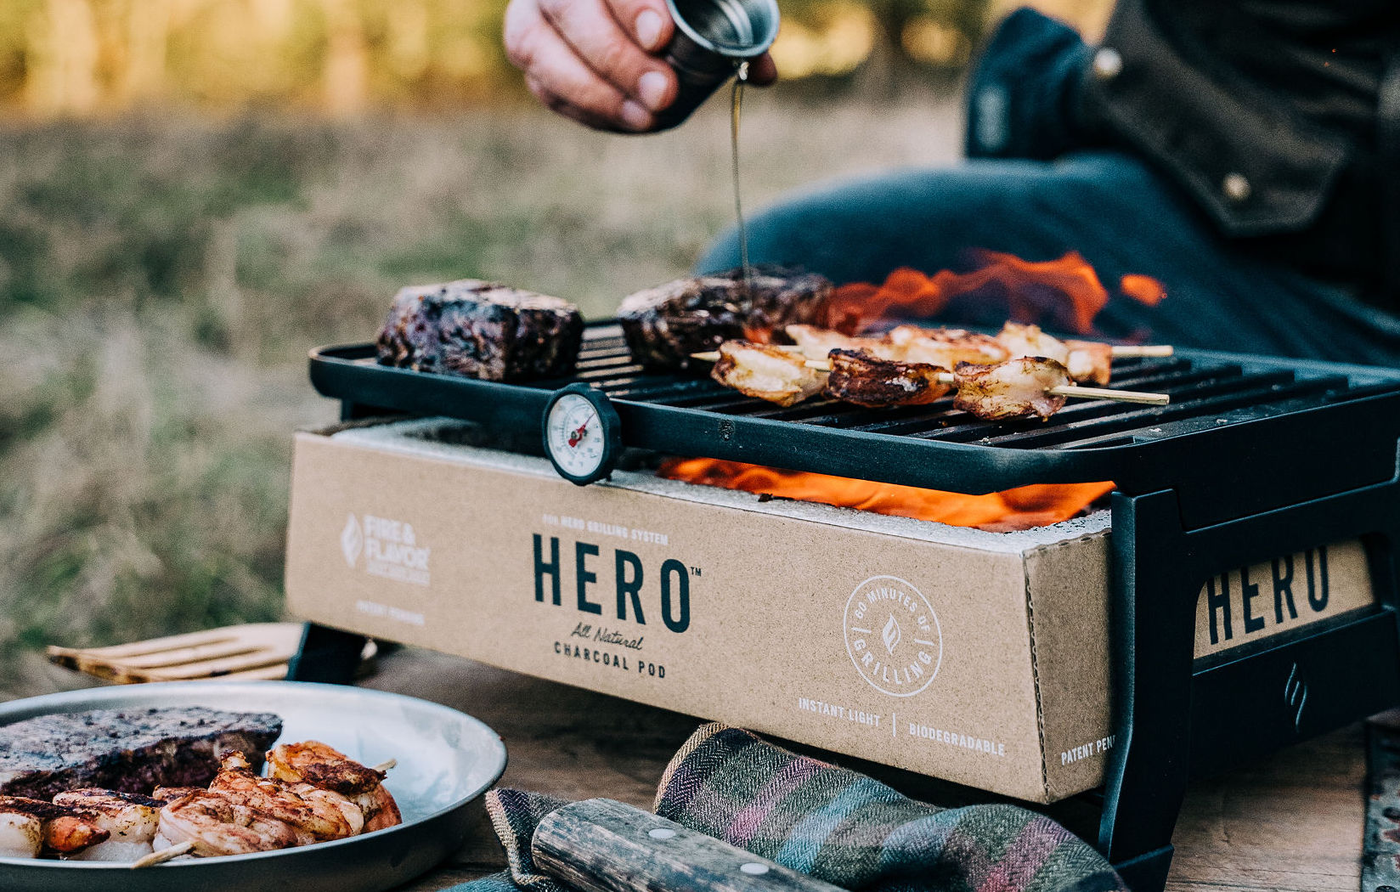 Meet the HERO™ Grill System